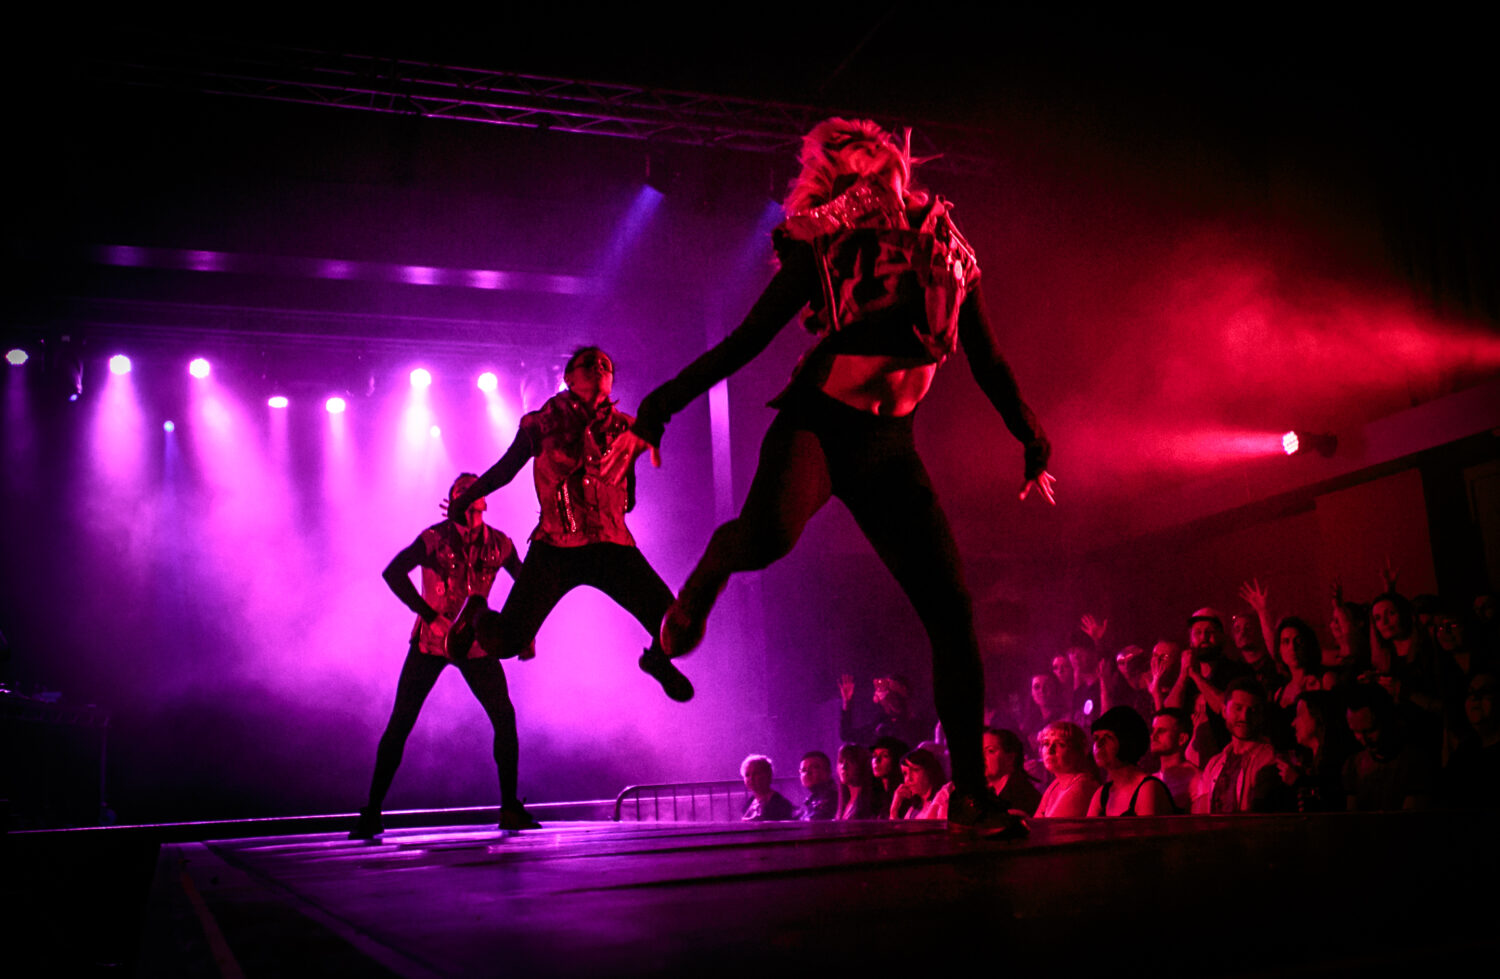 An image of three dancers lined up on a runway-style stage leaping upwards ito the air, their chests pushed forwards and heads thrown back. Audience members are visible to the right of the image and they look on seemingly entranced.